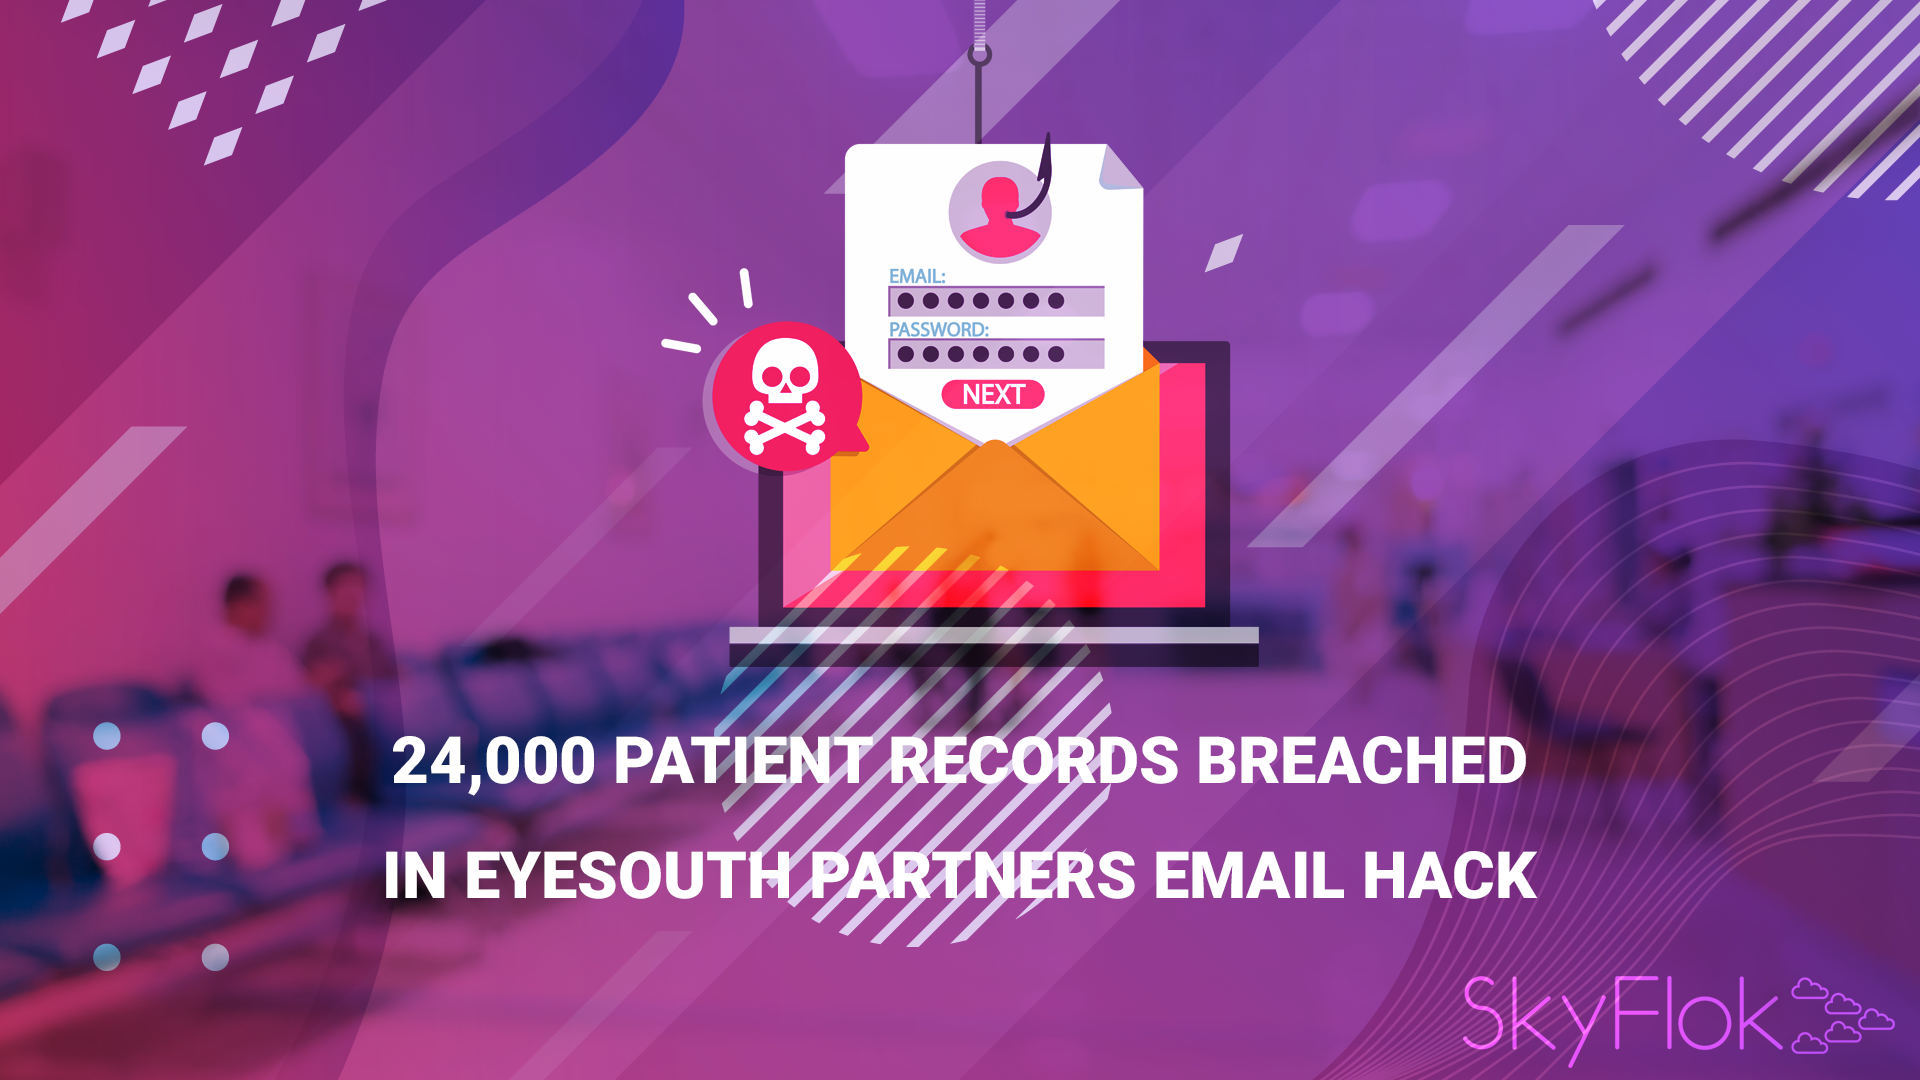 24,000 Patient Records Breached in EyeSouth Partners Email Hack